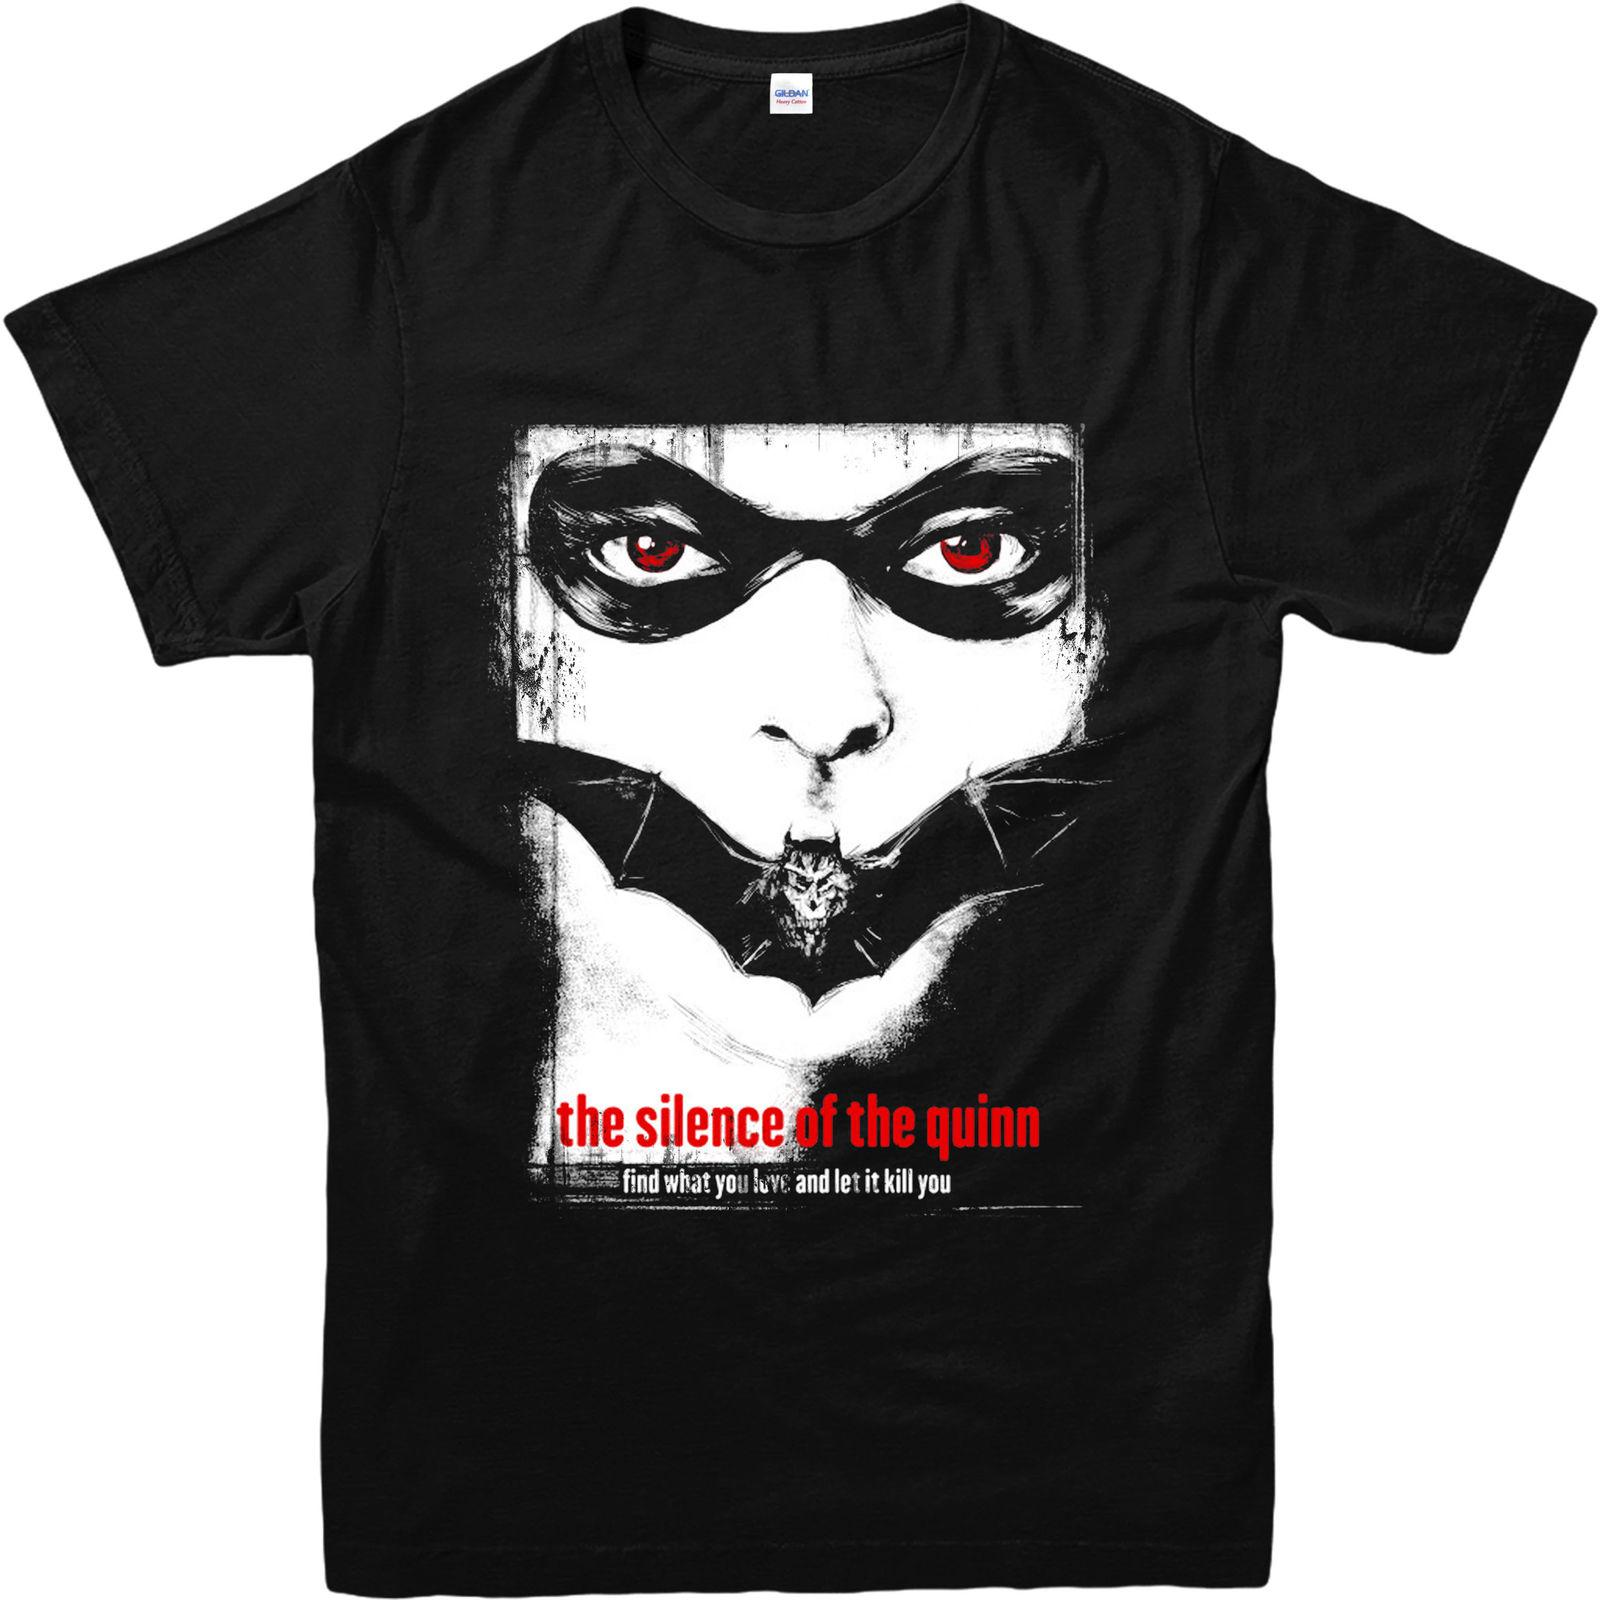 4913bace Harley Quinn T Shirt, Silence Of The Lambs Spoof T Shirt Inspired Design  Top Men Women Unisex Fashion Tshirt Fun Tshirts Party T Shirts From ...